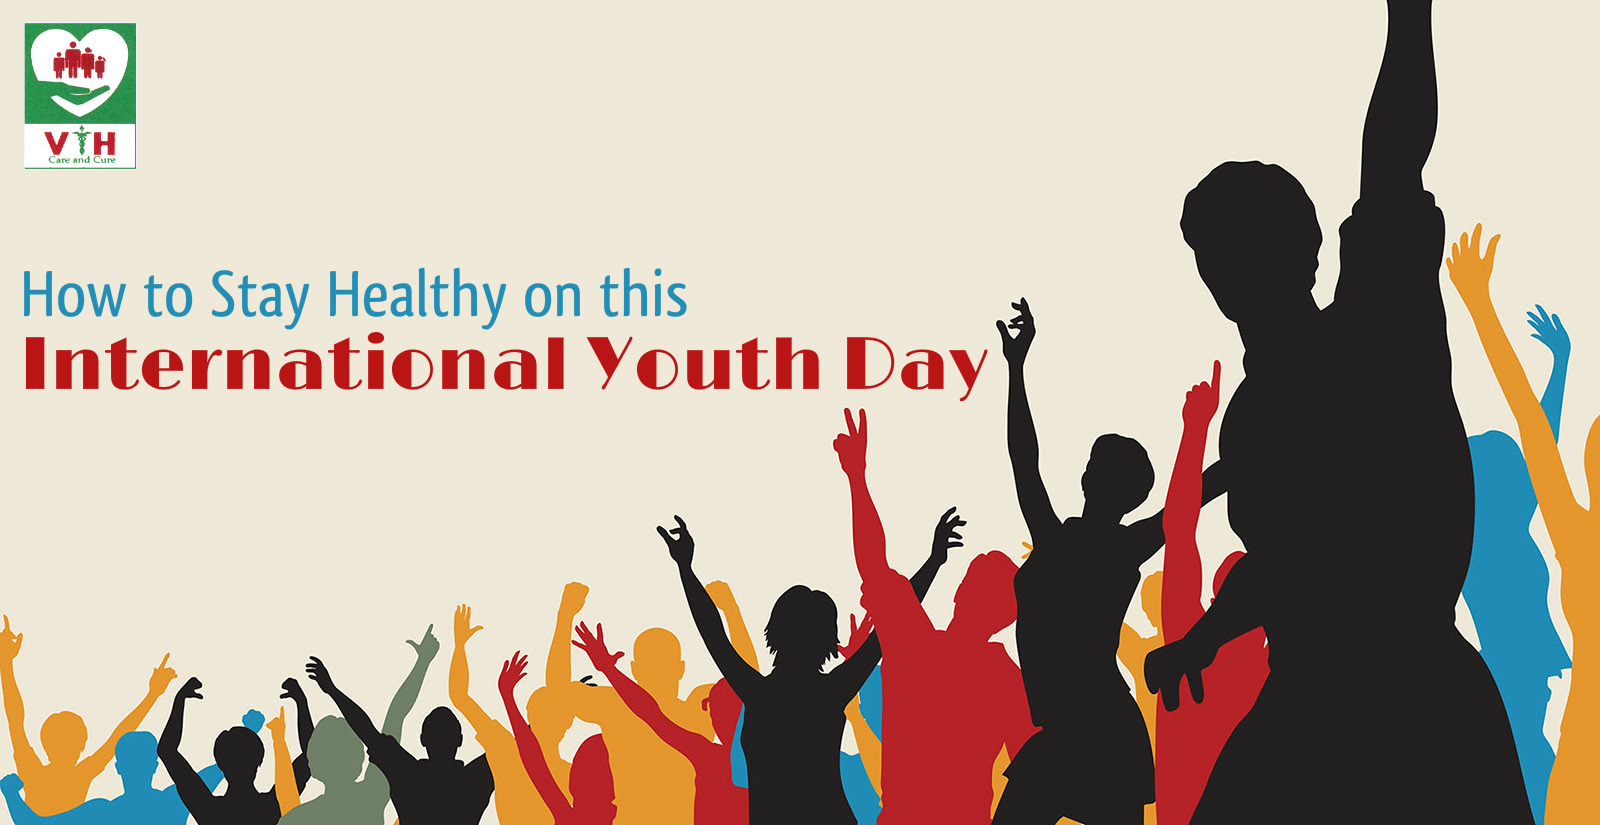 4 Tips on How to Stay Healthy on this International Youth Day